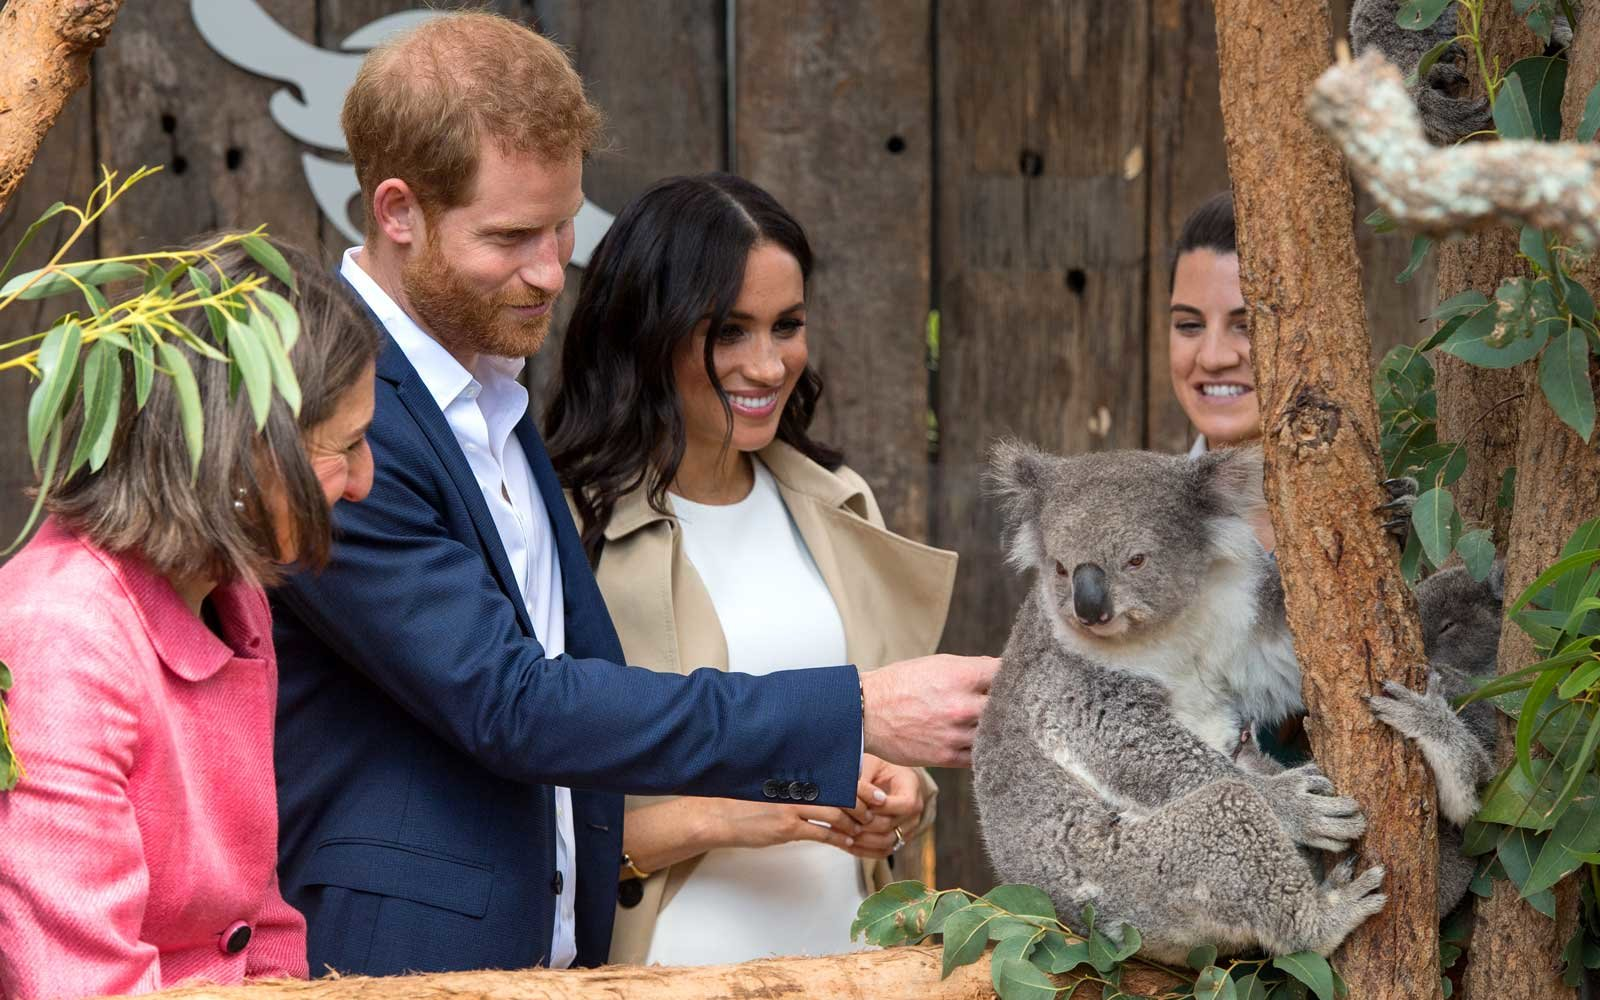 The Duke And Duchess Of Sussex Visit Australia - Day 1